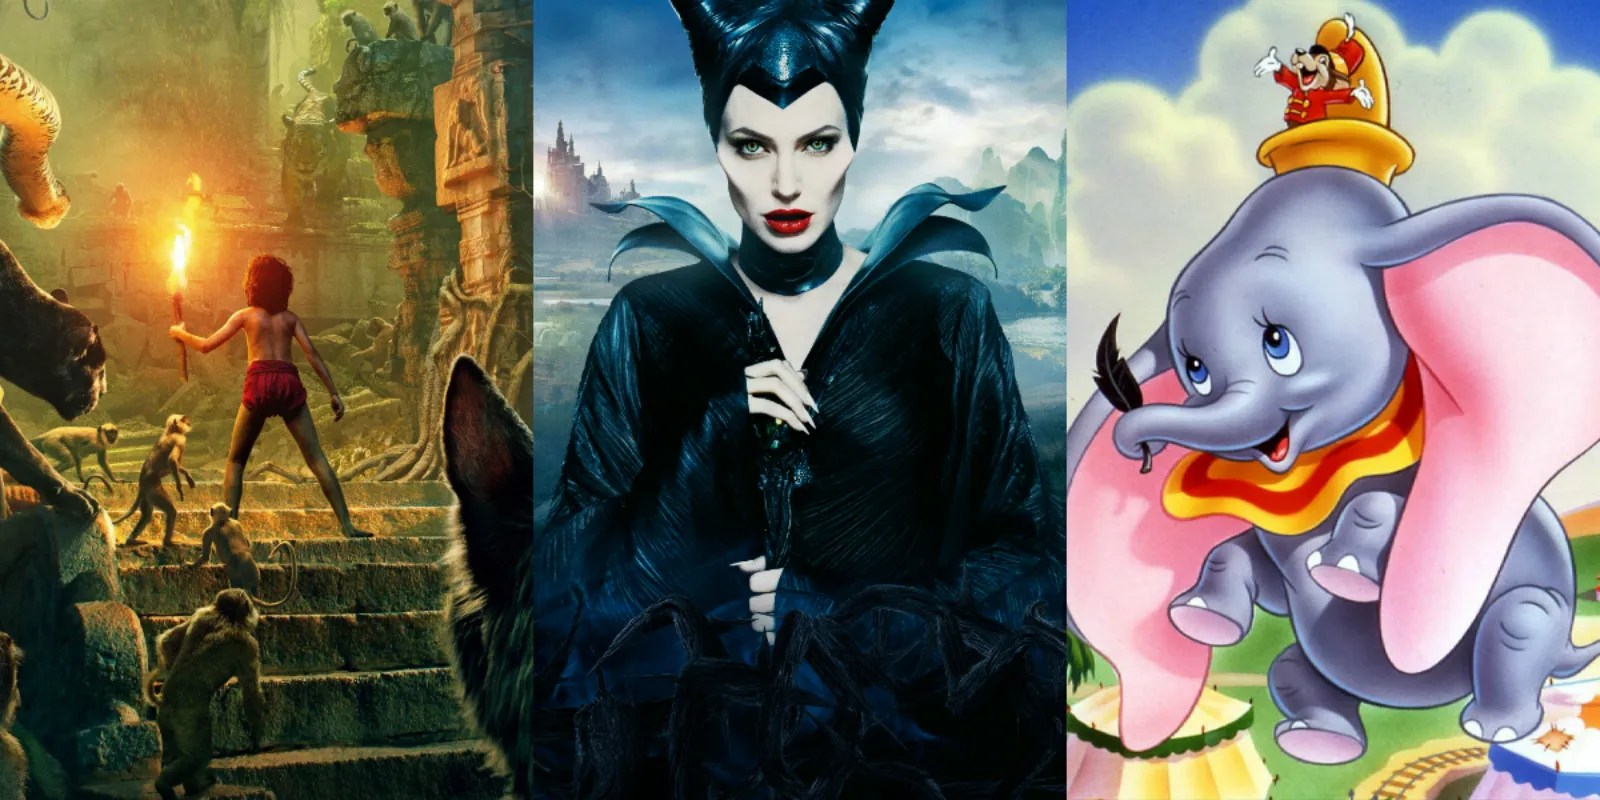 Disney Confirms Jungle Book 2, Maleficent 2 & More; Claims ...